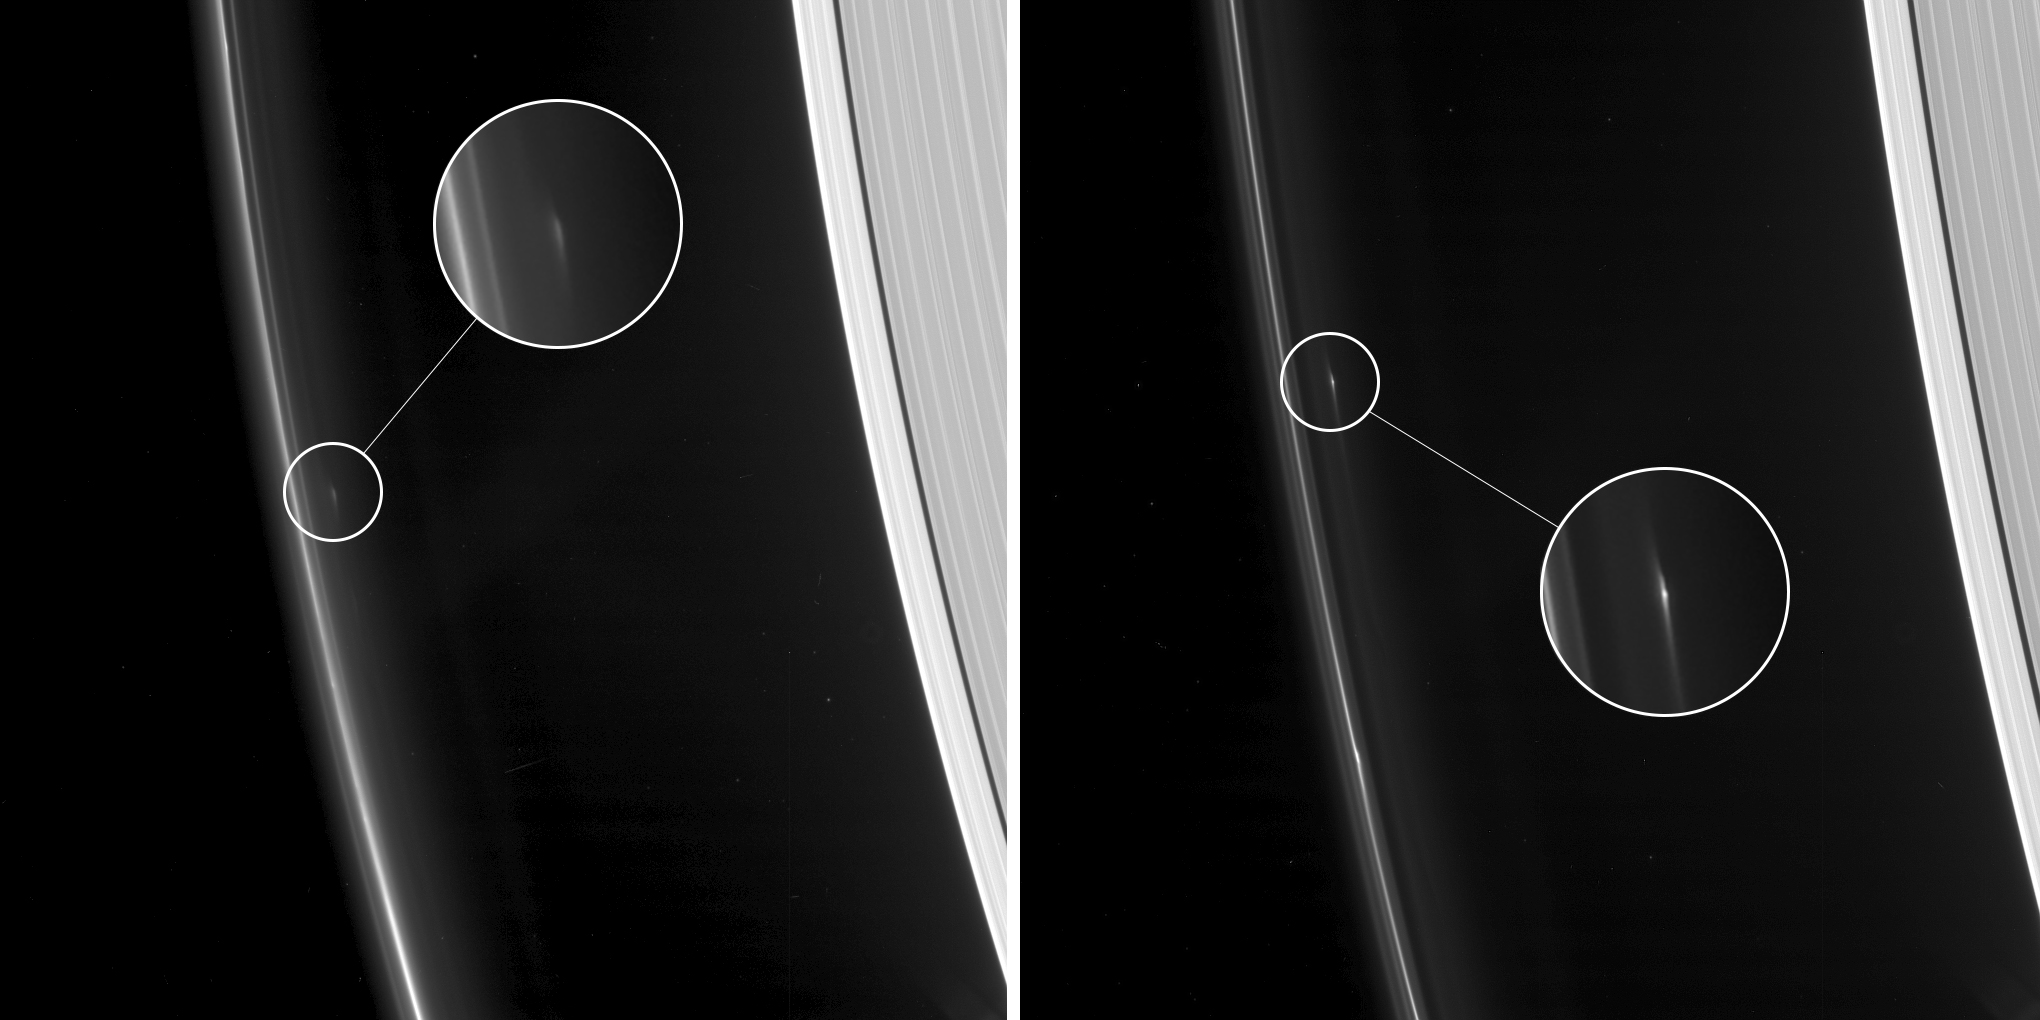 Objects in Saturn's F rings (annotated)